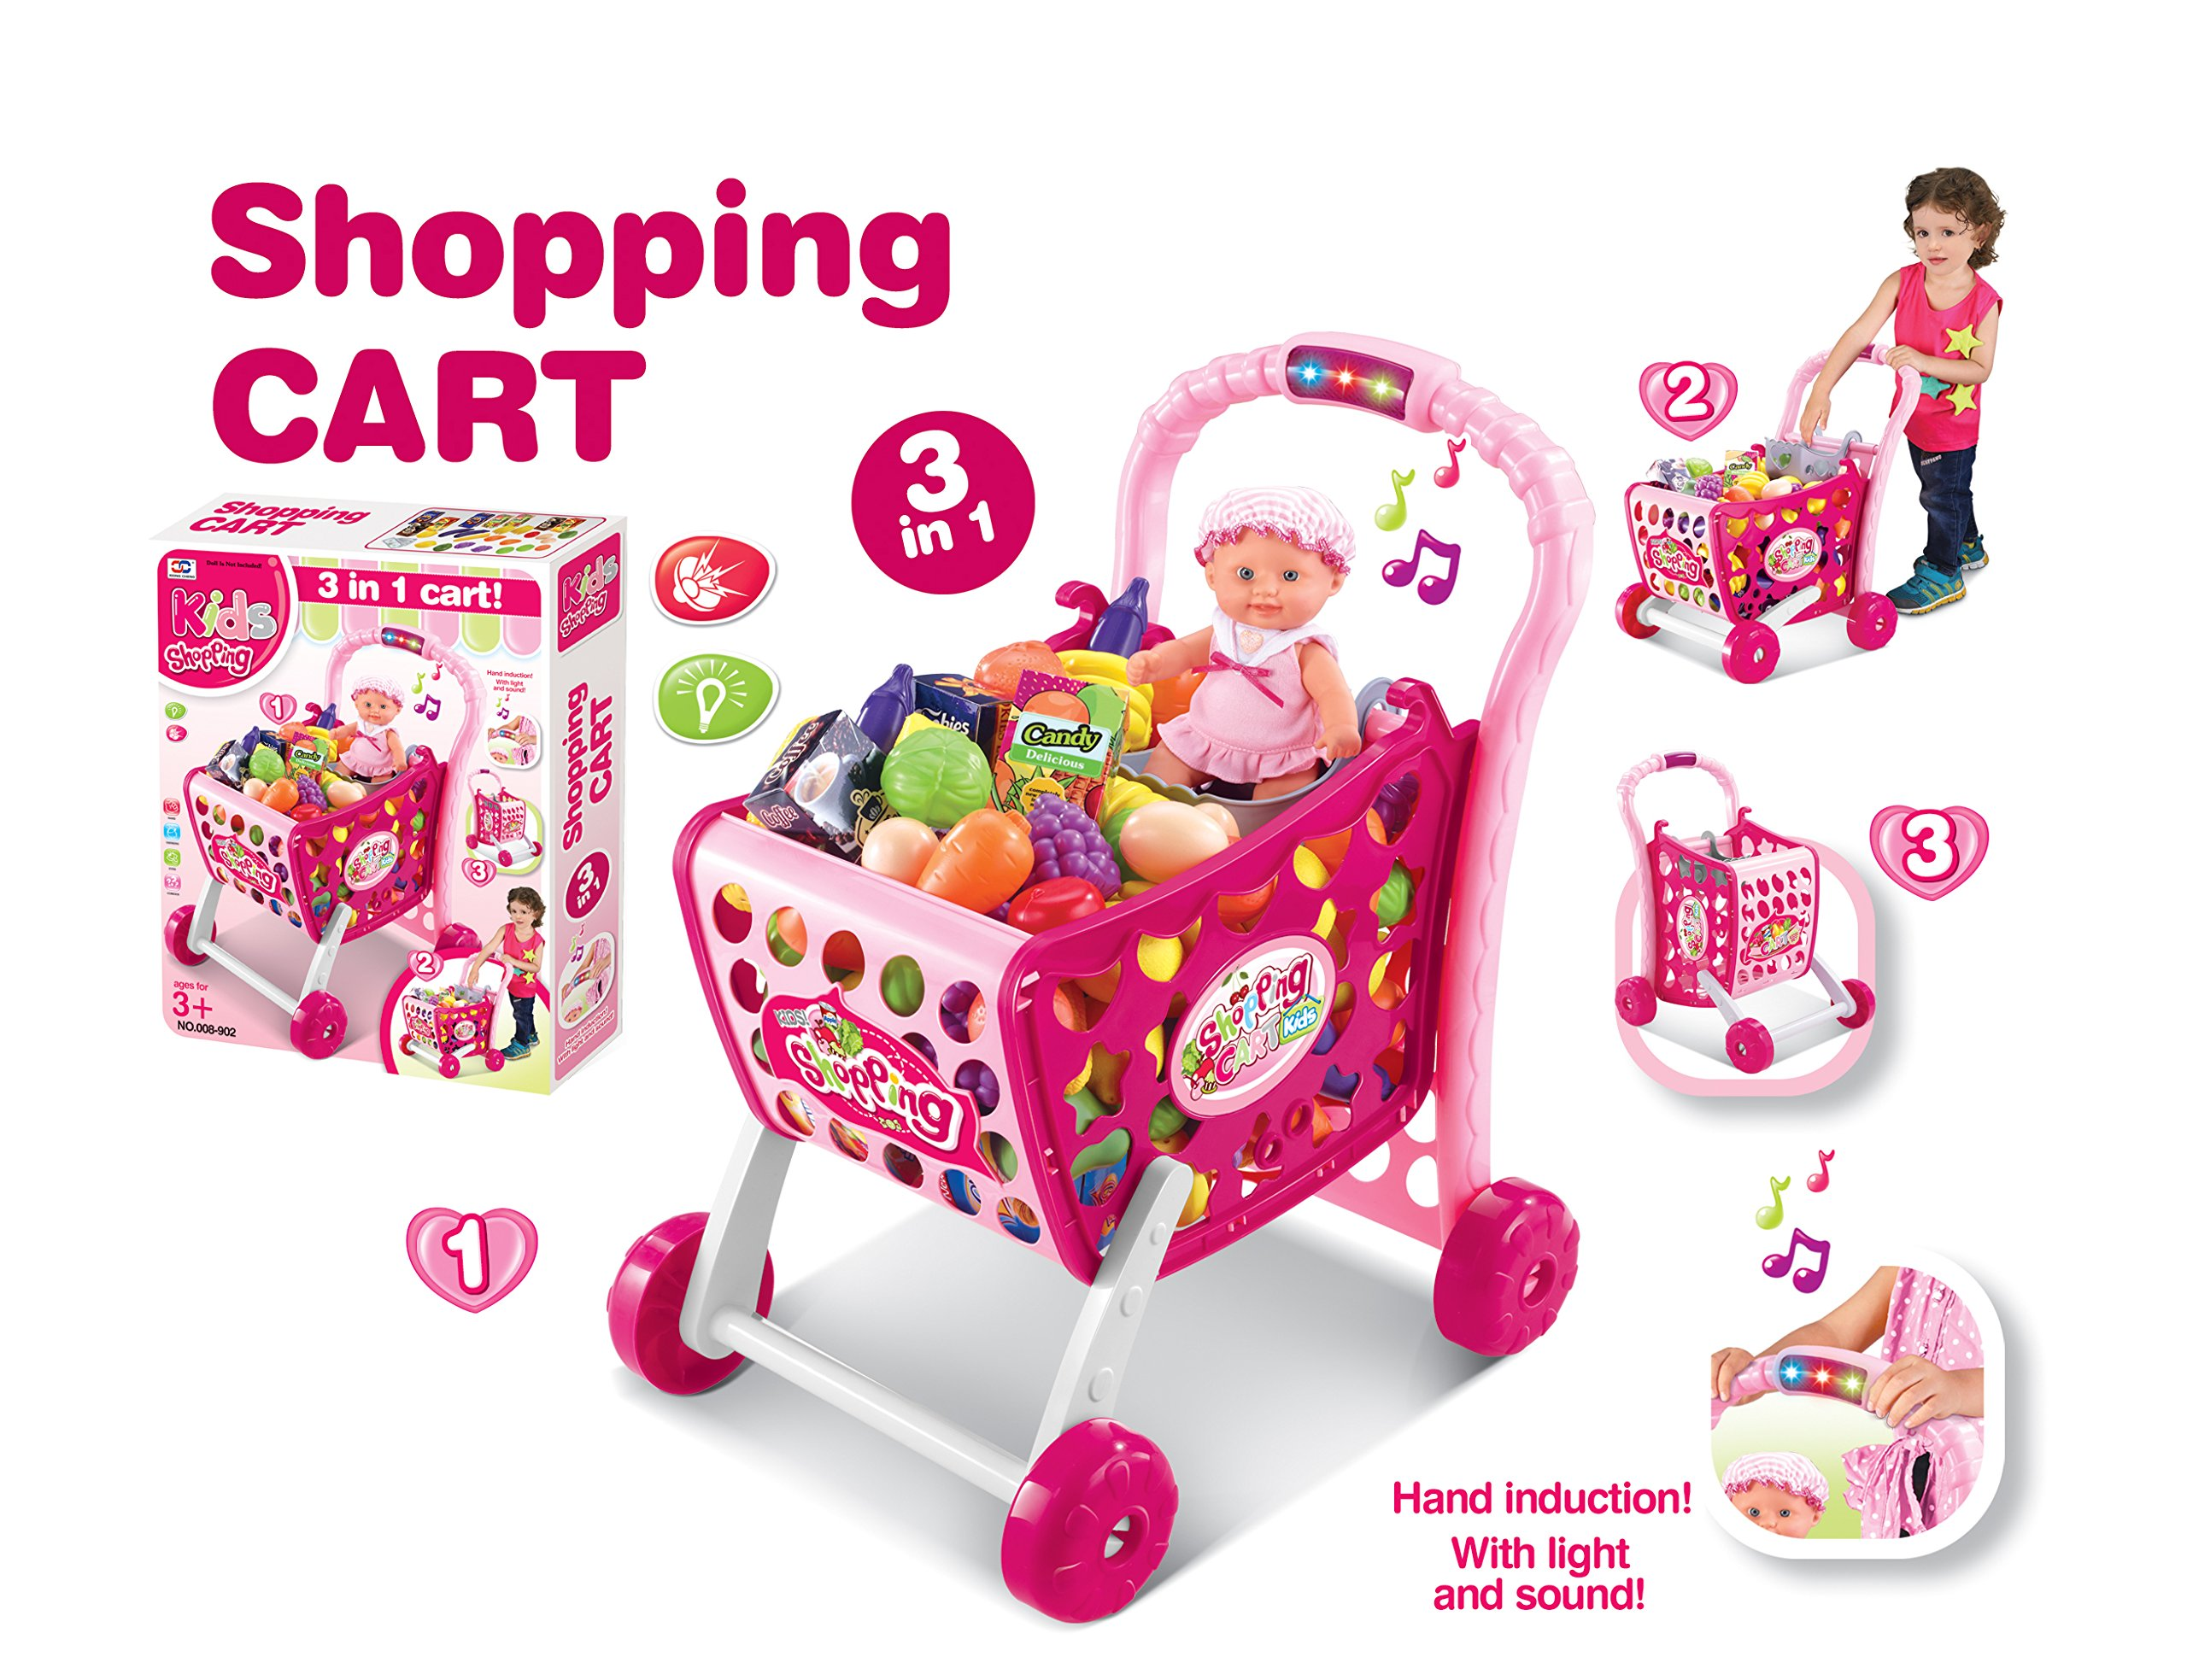 Paradise Treasures Pink Pretend Play Shopping Cart Toy for Girls/Boys with 3 in 1 Grocery Cart with Light and Sound (78) pc Grocery Set